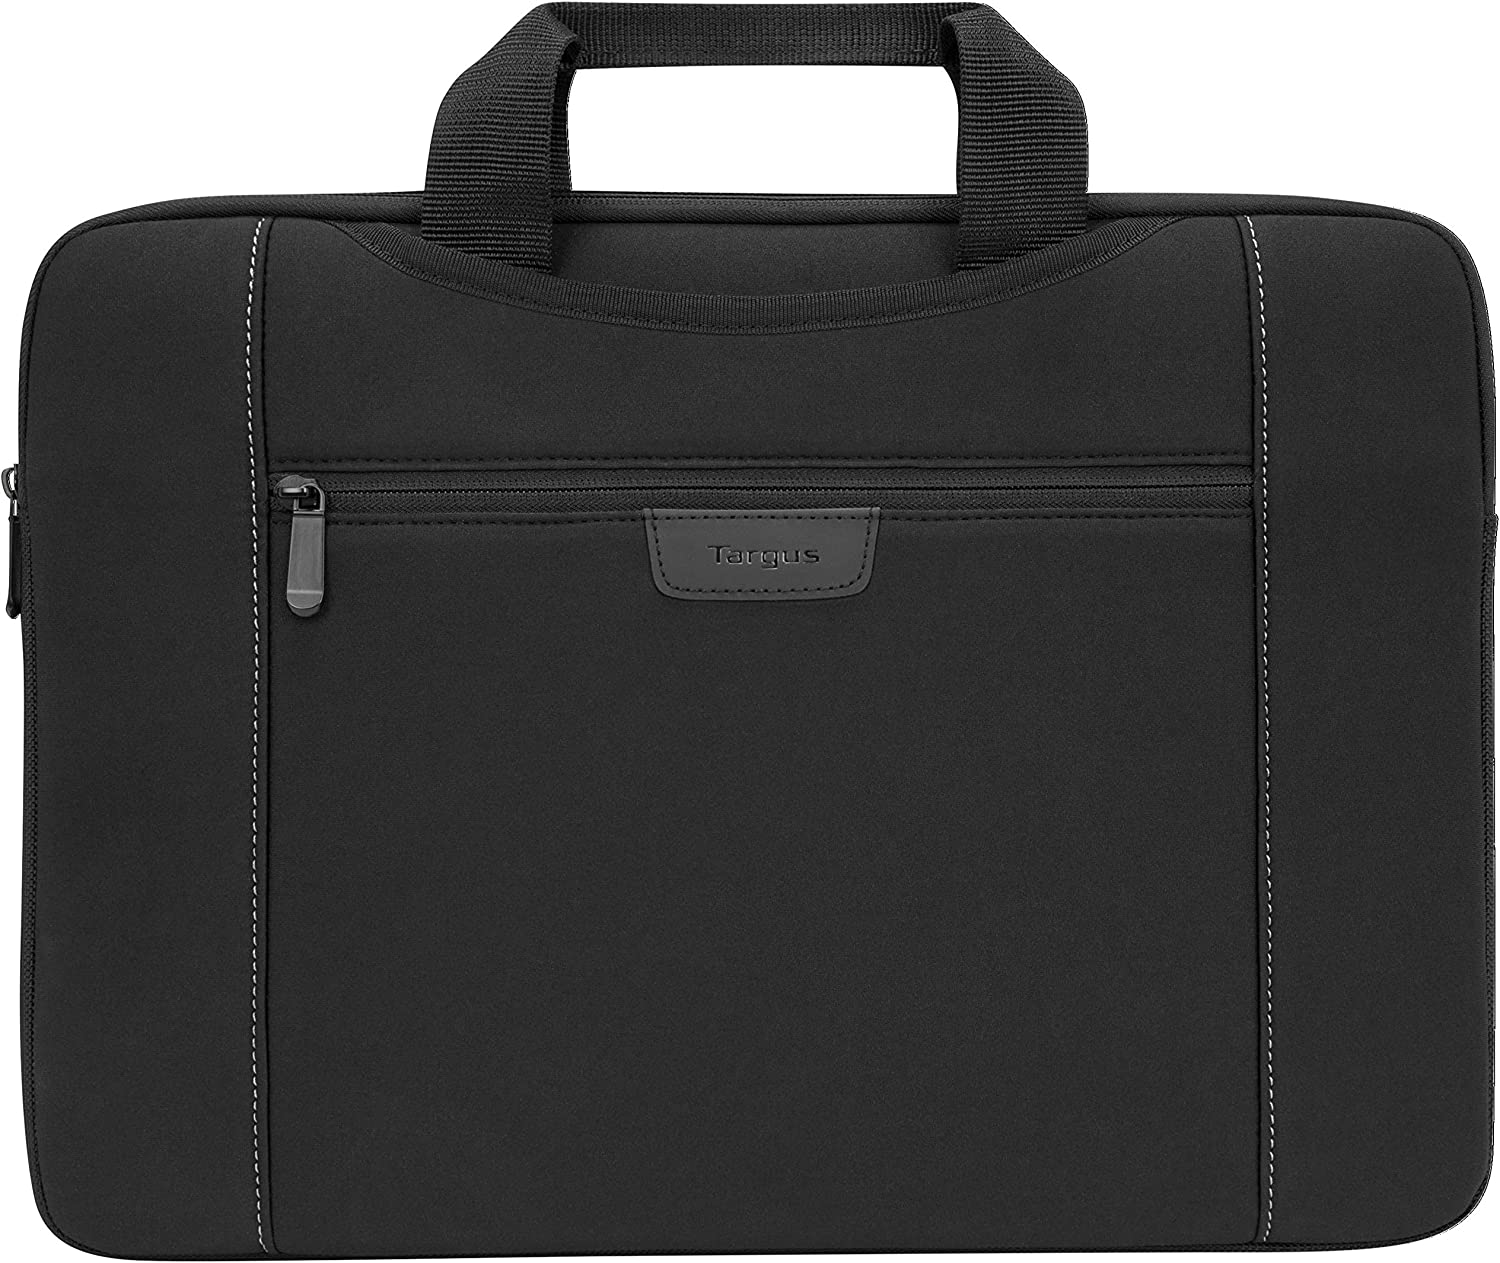 Targus Slipskin Laptop Case with Hideaway Handles, Front Pocket Pouch, Protective Sleeve for 15.6-Inch Laptop, Black (TSS995GL)